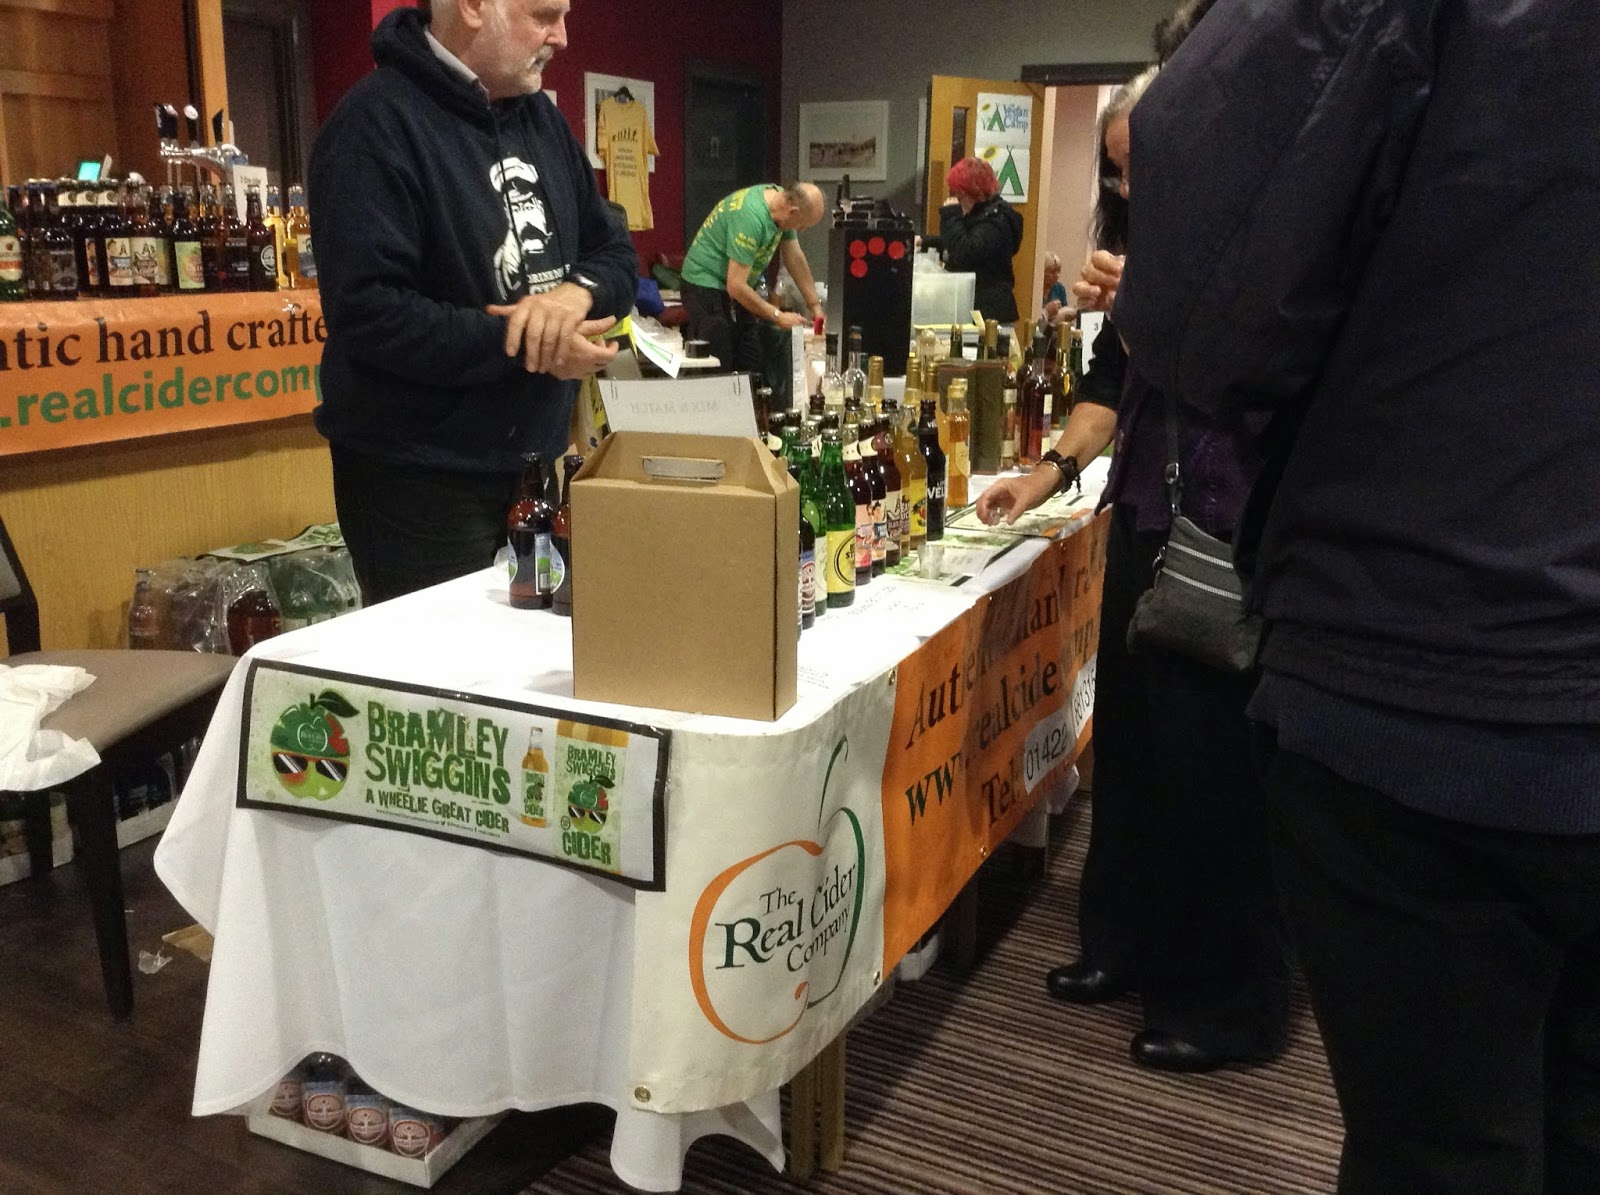 North East Vegan Festival 2014